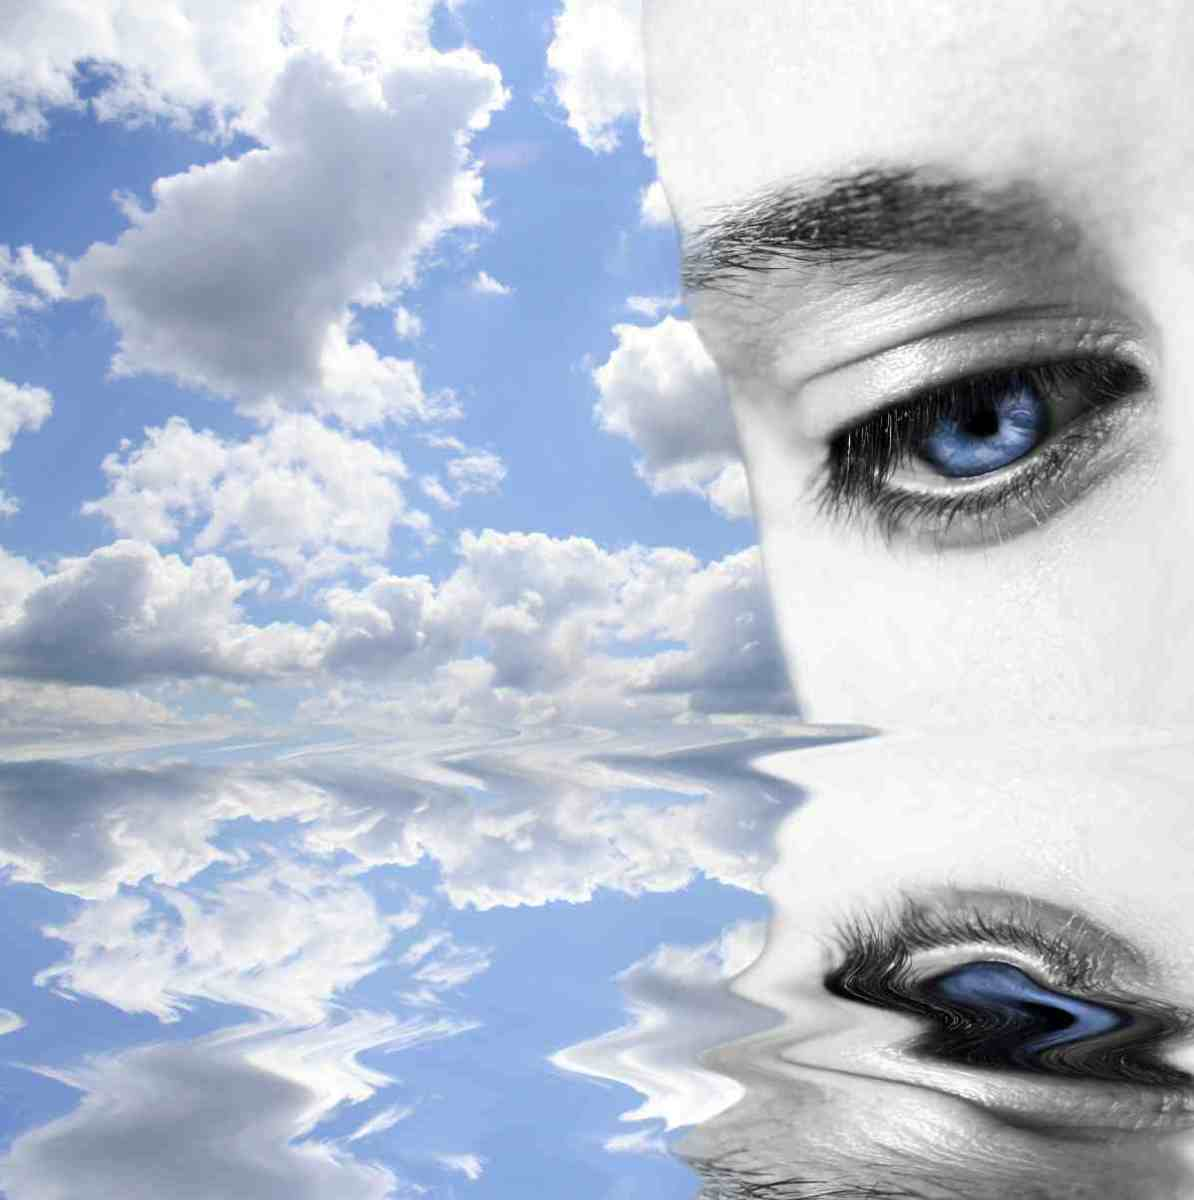 precognition-can-we-really-foresee-the-future